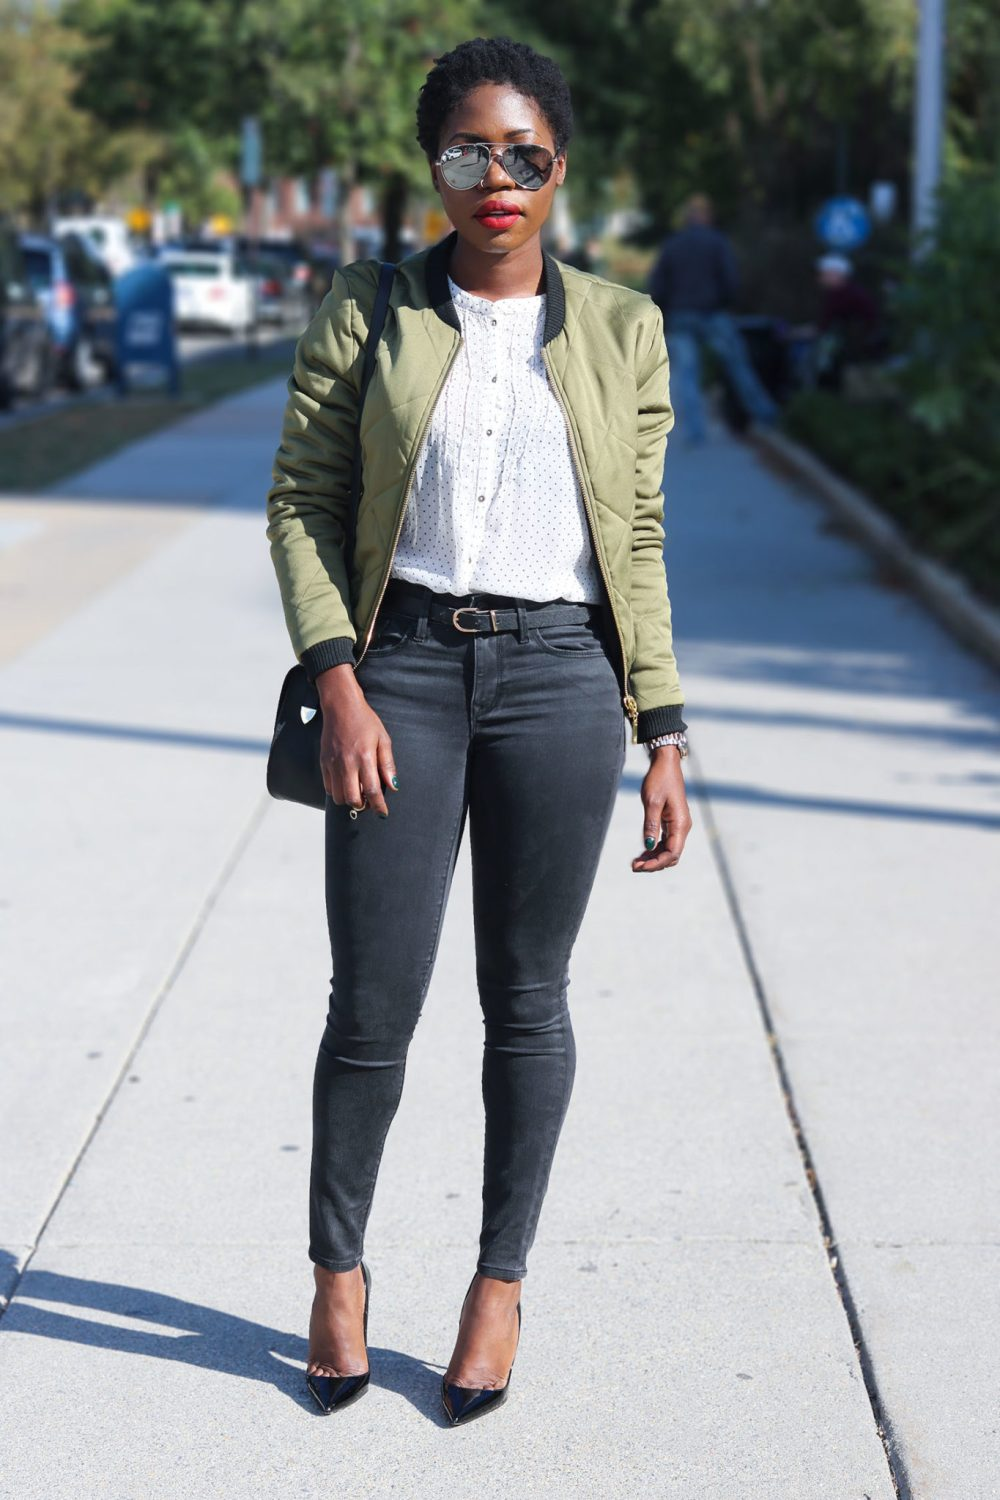 style-synopsis-leather-jeans-bomber-jacket-style